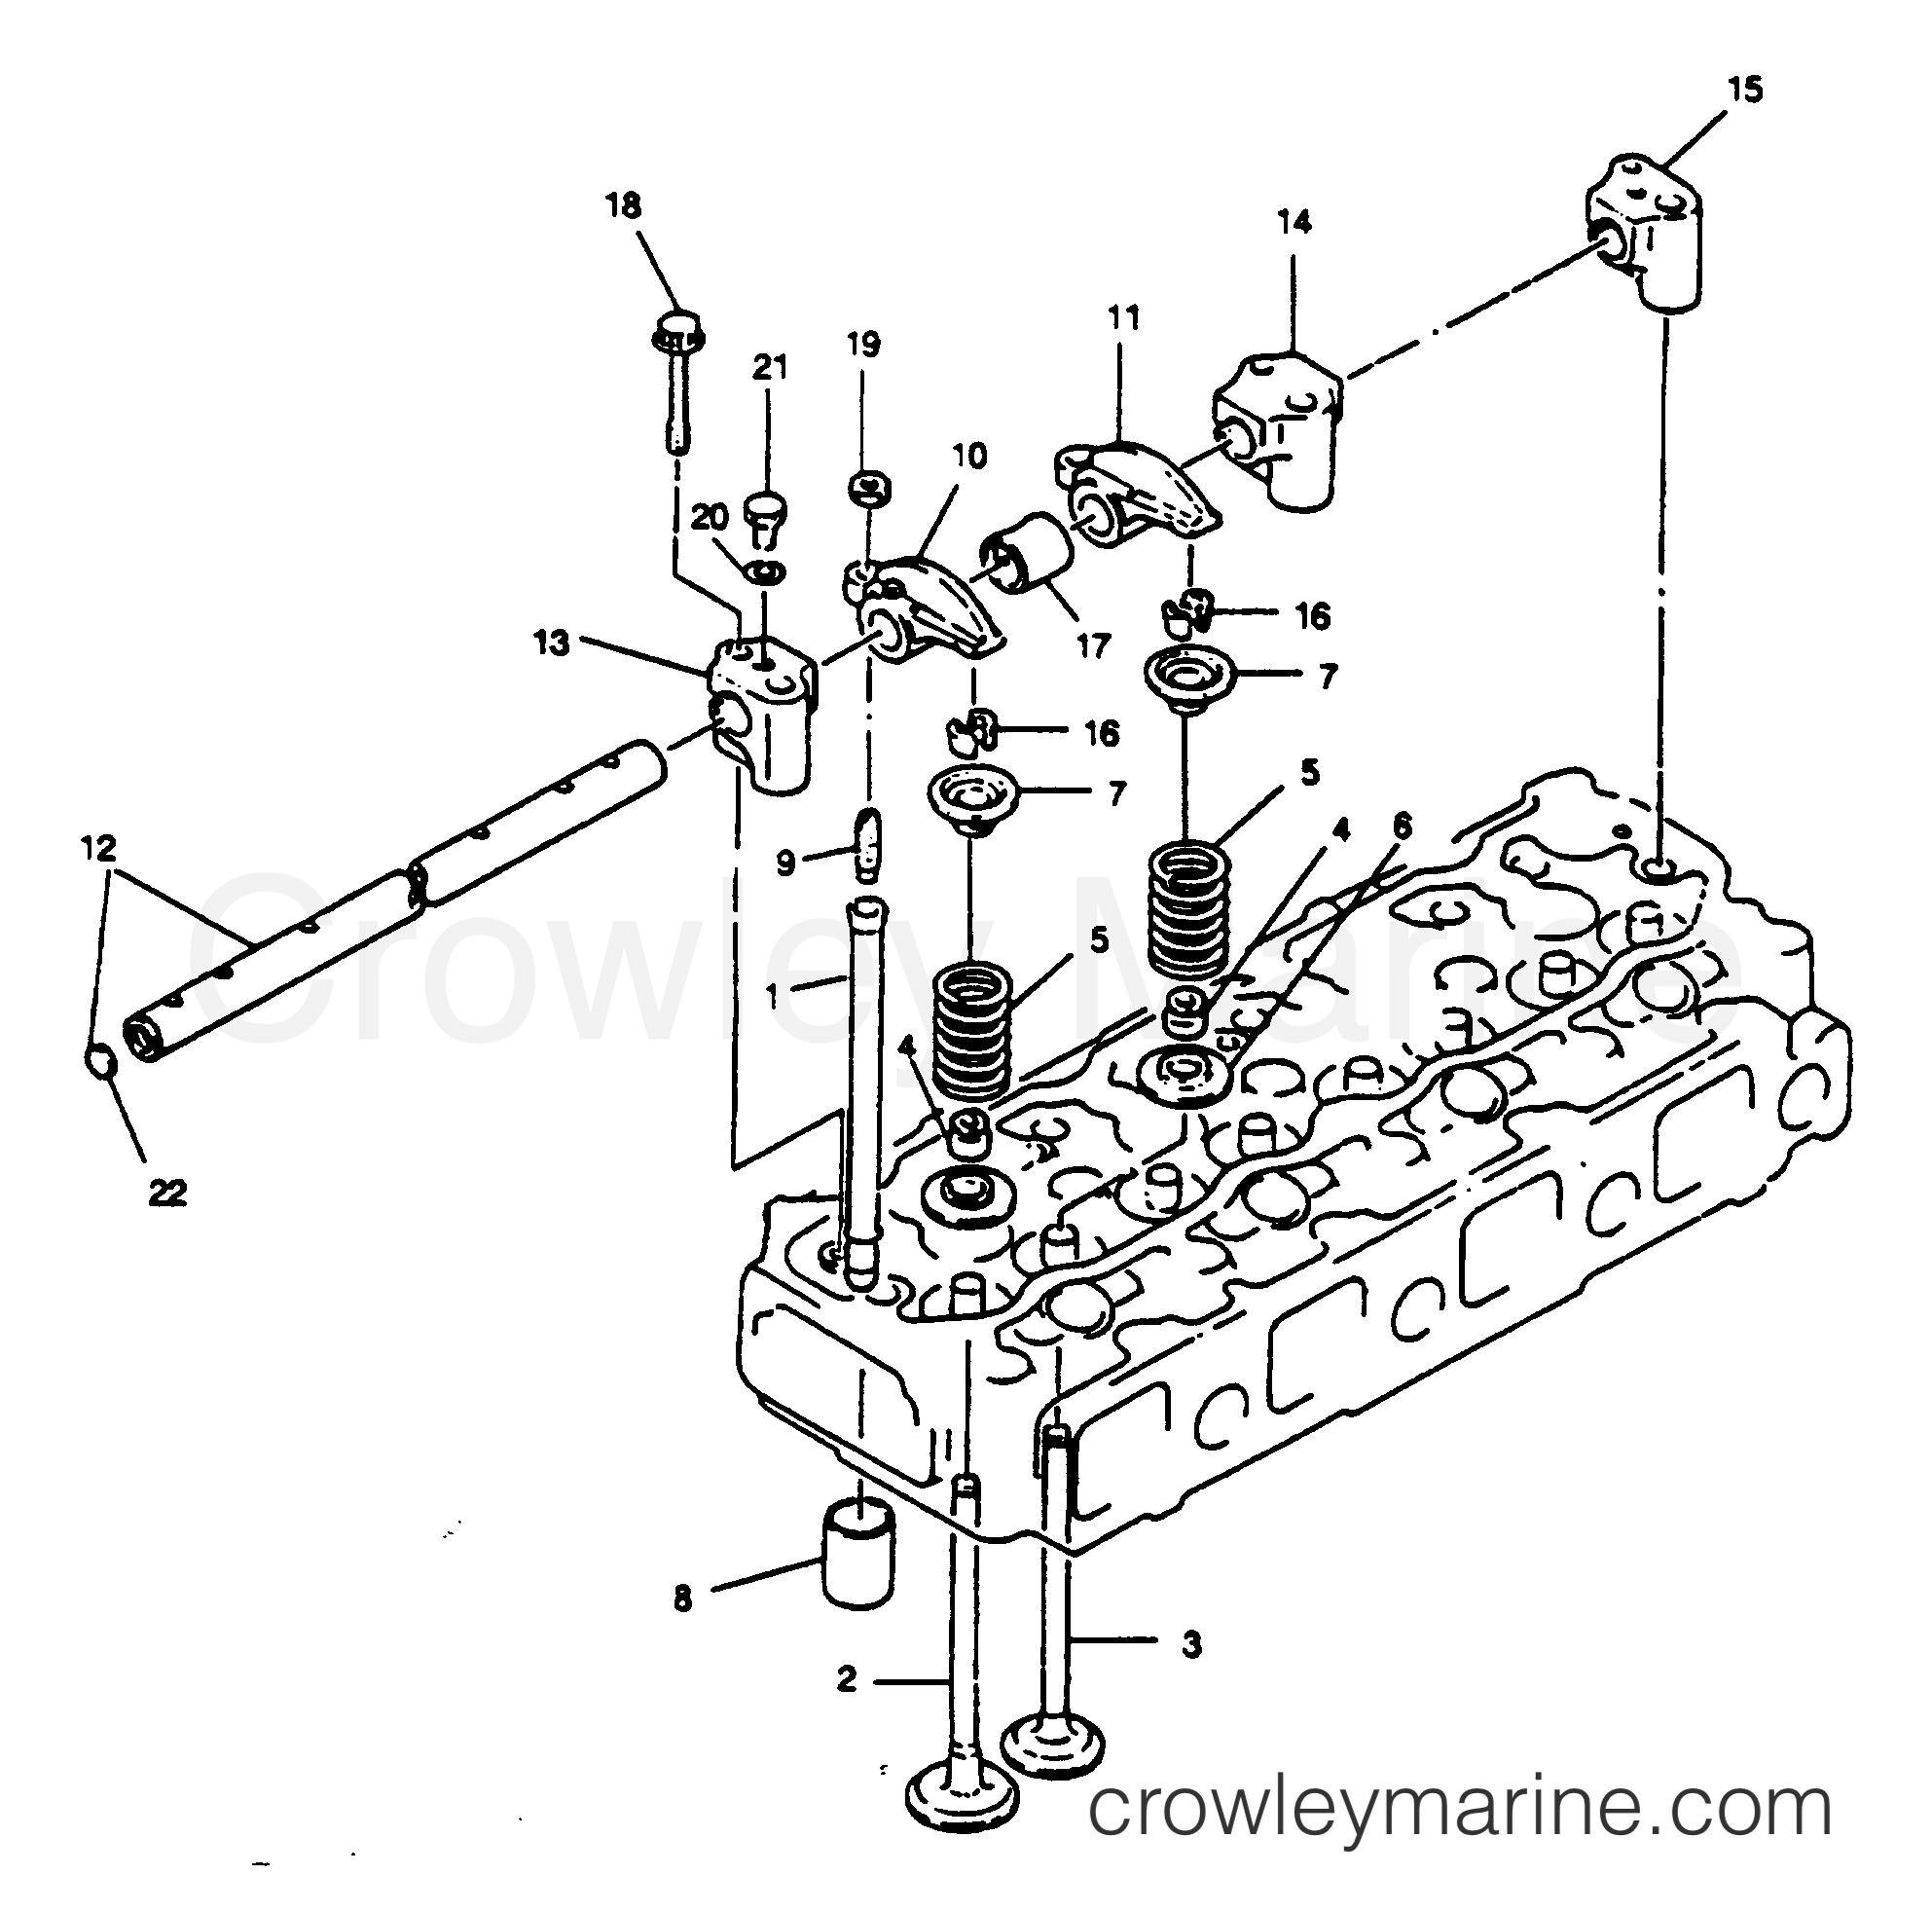 Terex Crane Wiring Diagrams Diagram Wiring Diagram Images